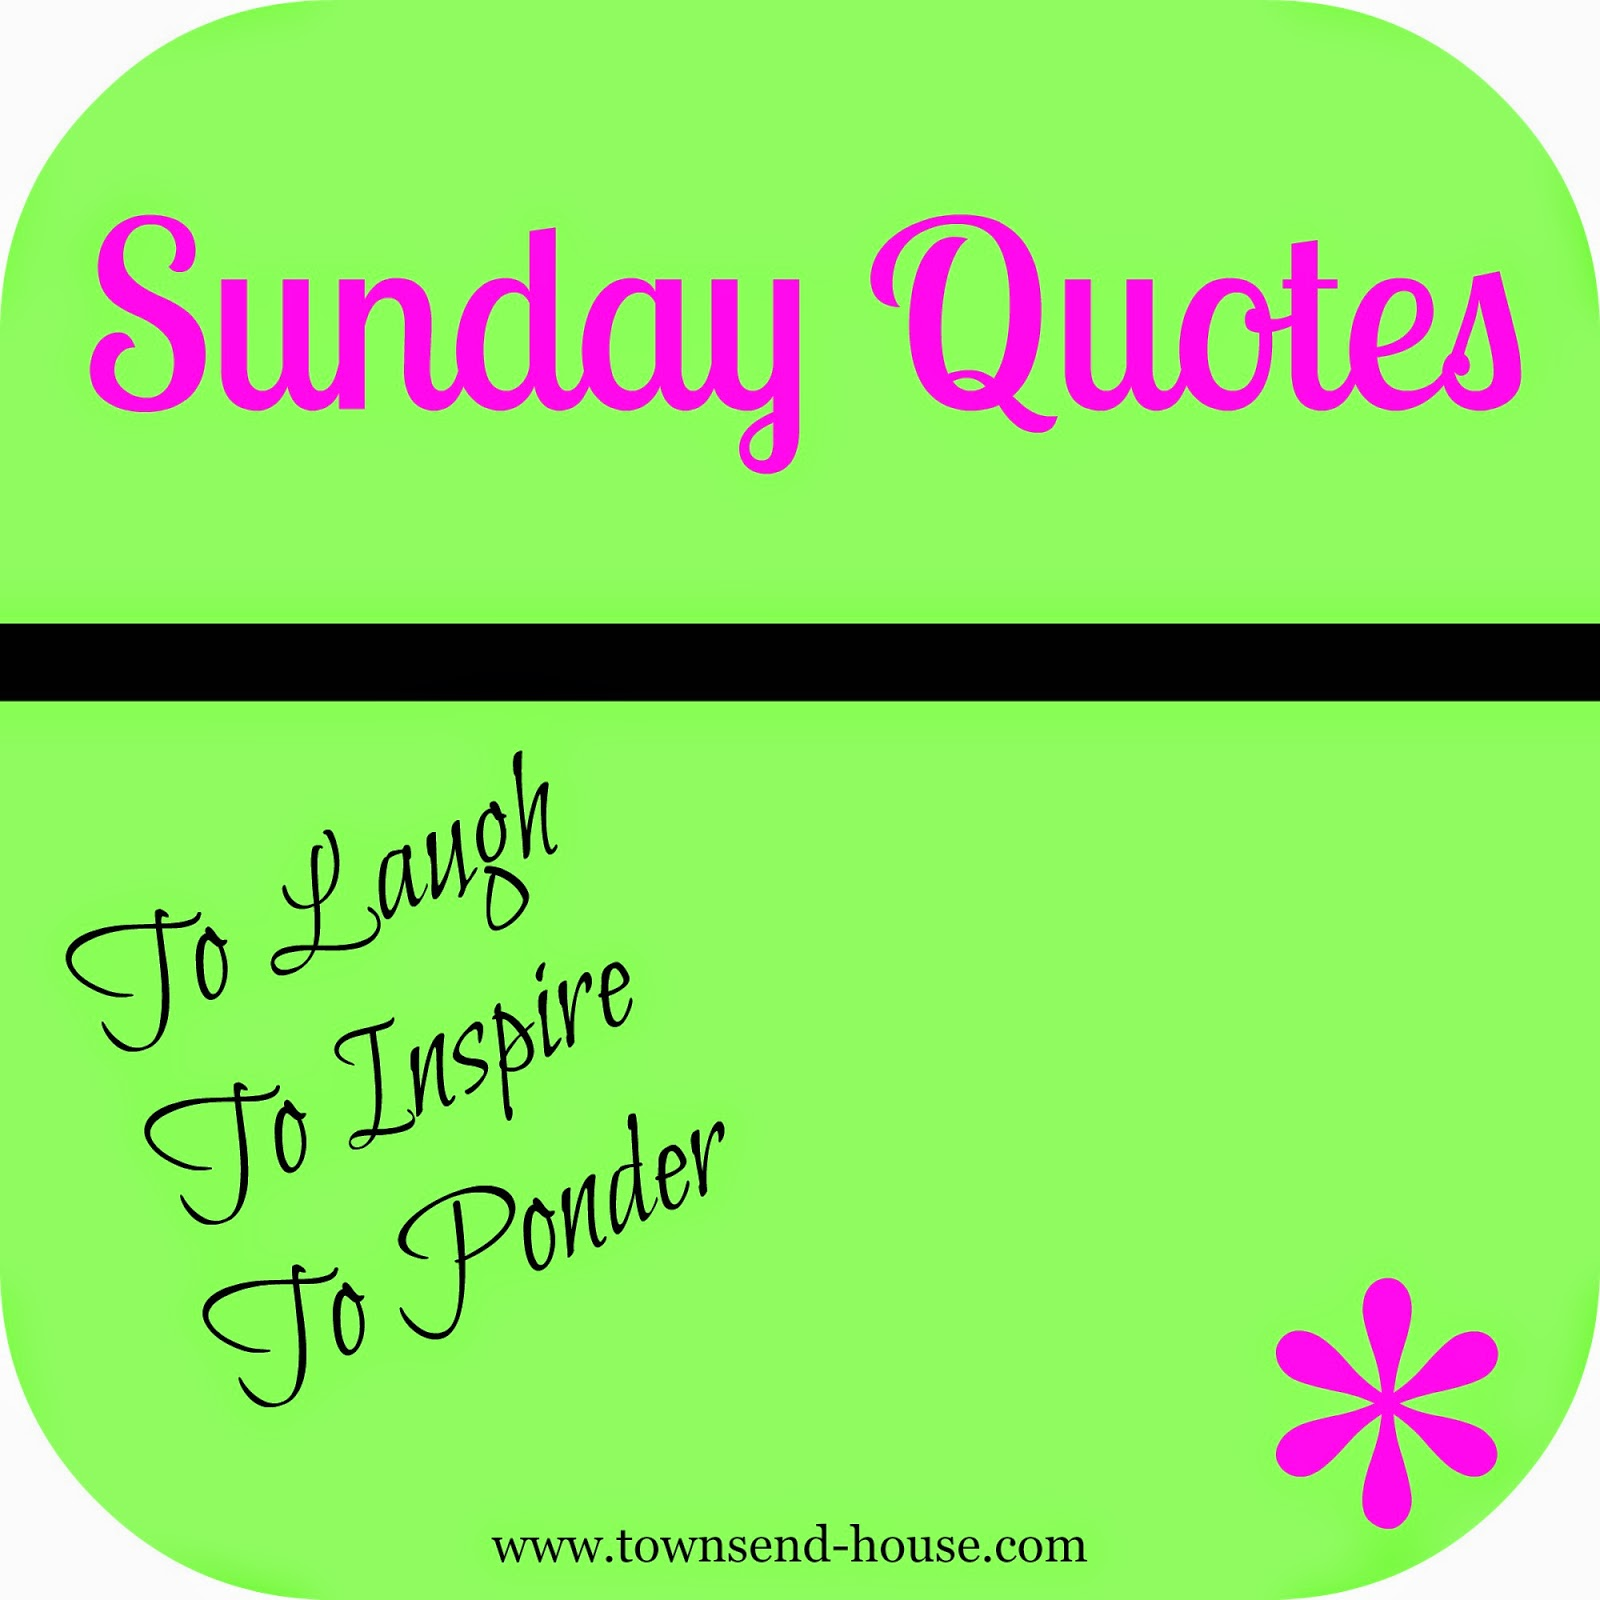 Sunday Quotes Images Townsend House Sunday Quotes